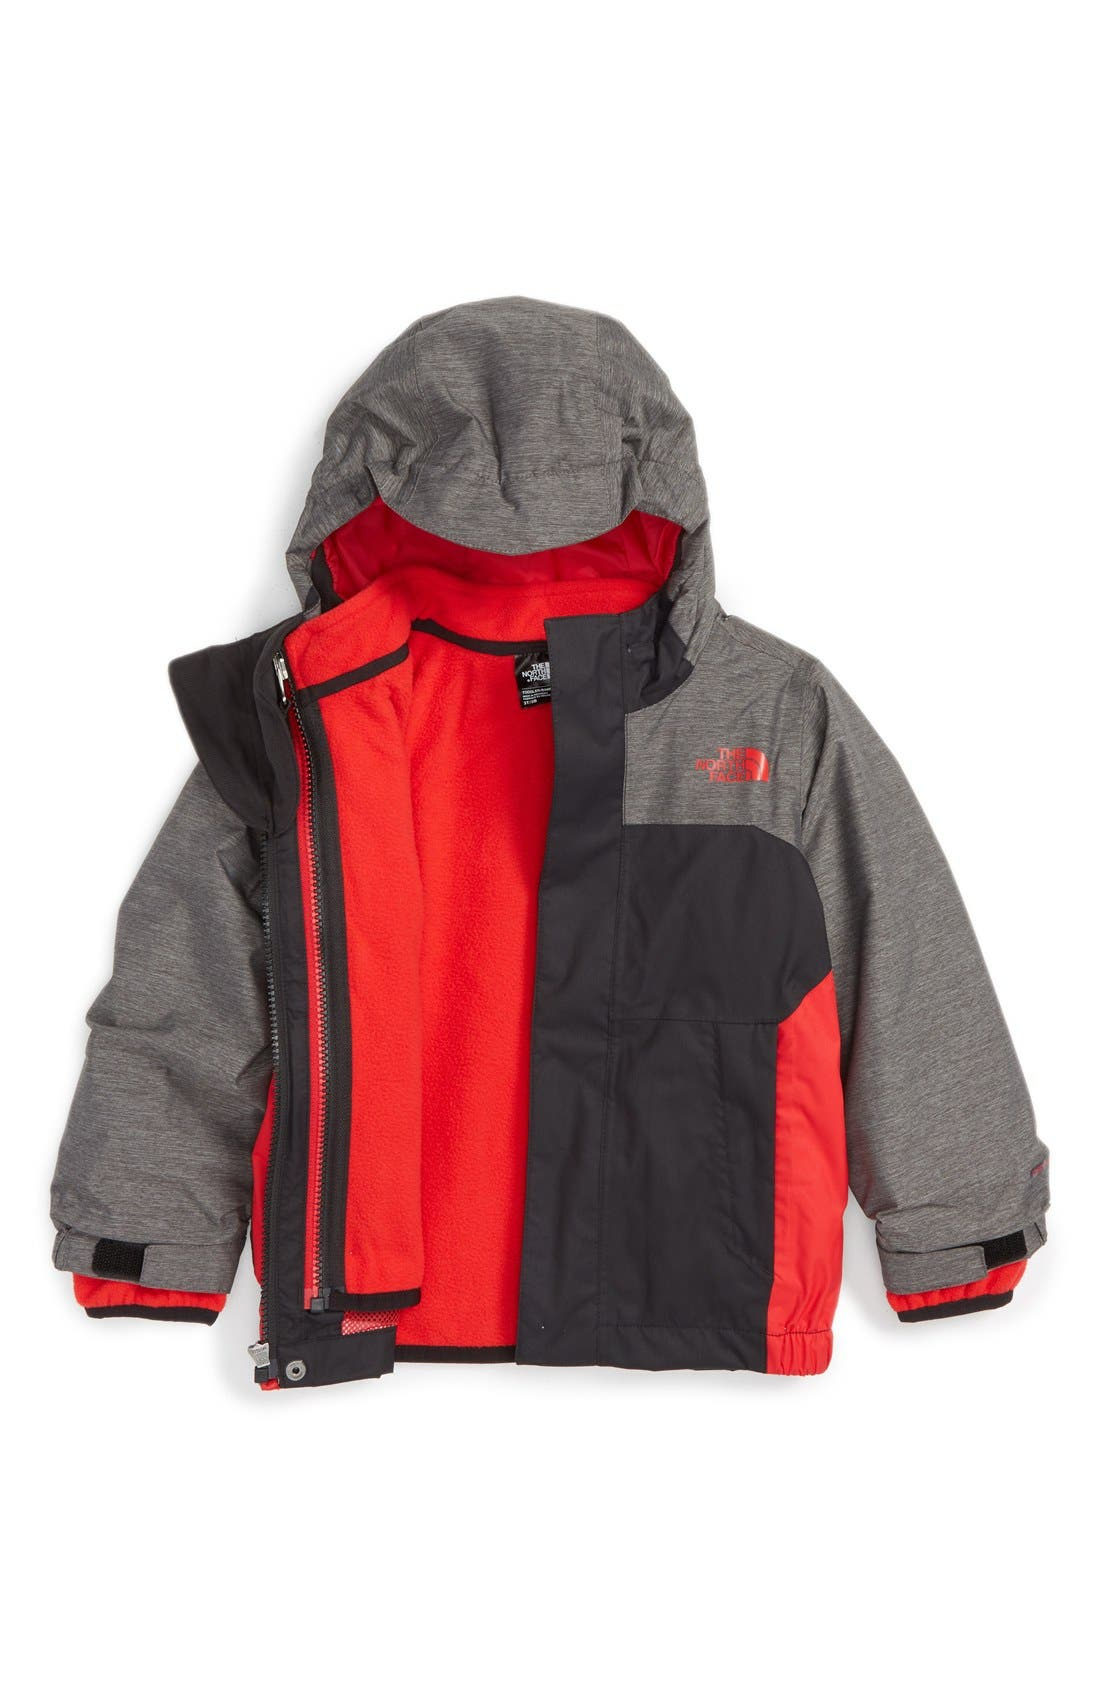 Alternate Image 1 Selected - The North Face 'Vortex' TriClimate® Waterproof 3-in-1 Jacket (Toddler Boys & Little Boys)